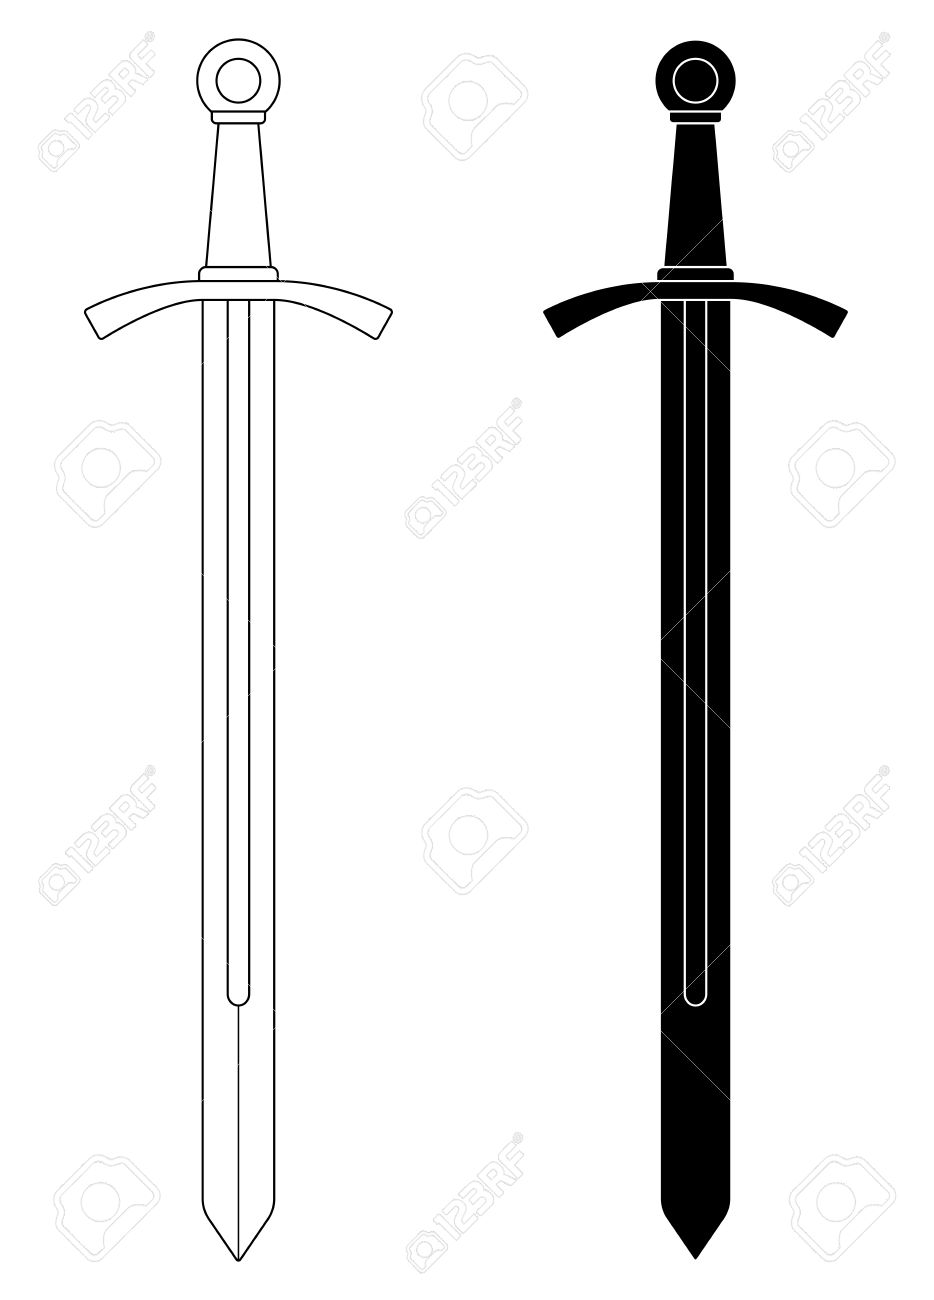 one handed medieval knight vector sword clip art illustration rh 123rf com sword vector free download sword vector free download